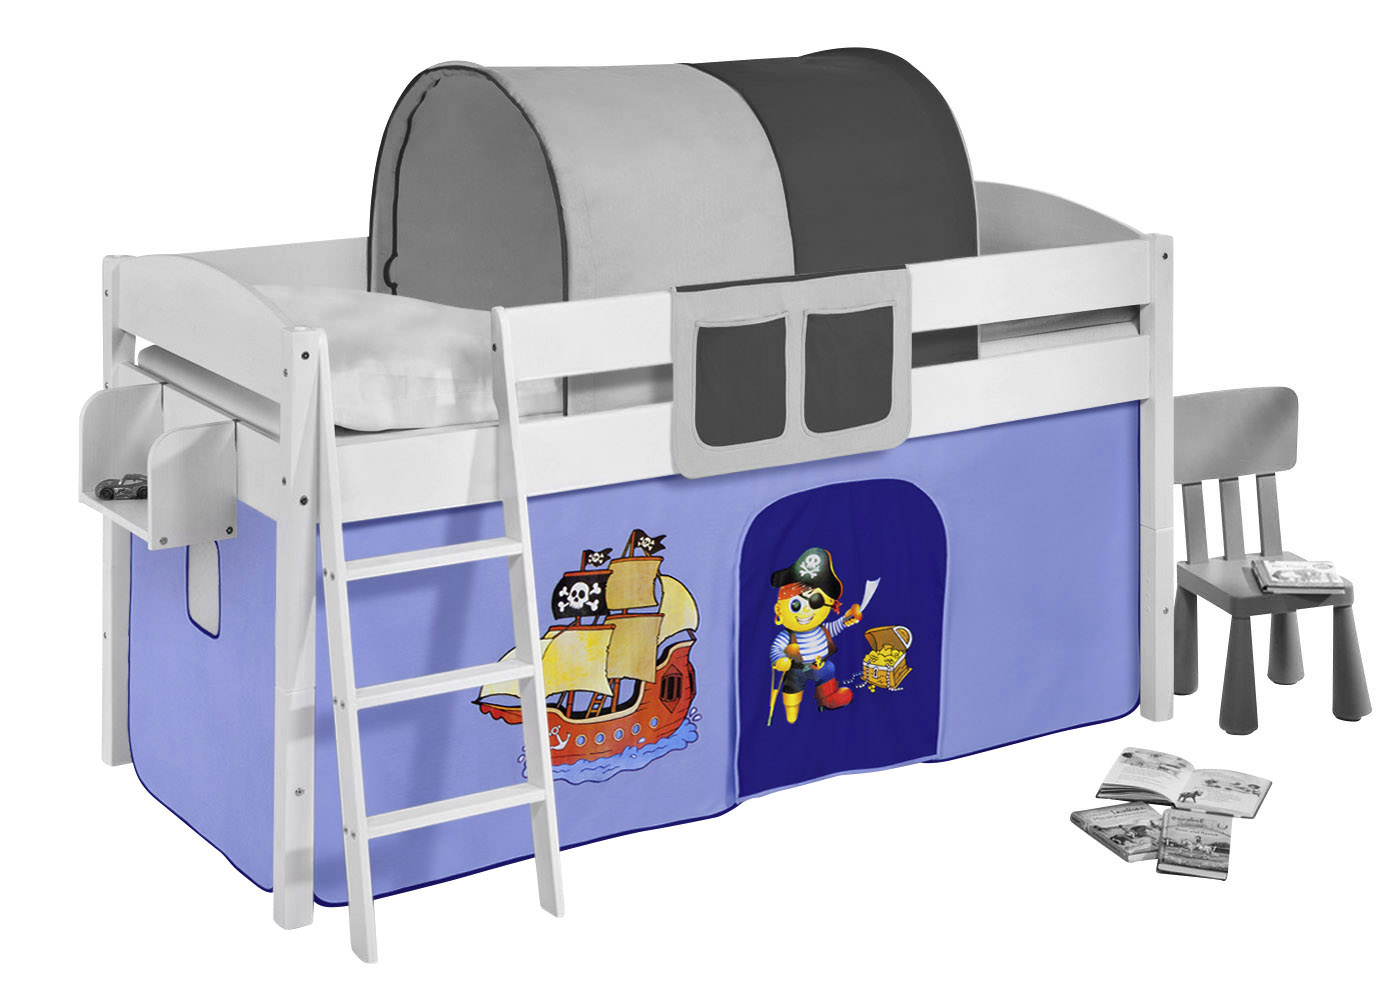 vorhang set f r kinder hochbetten spielbetten 2 teilig lilokids versch motive ebay. Black Bedroom Furniture Sets. Home Design Ideas